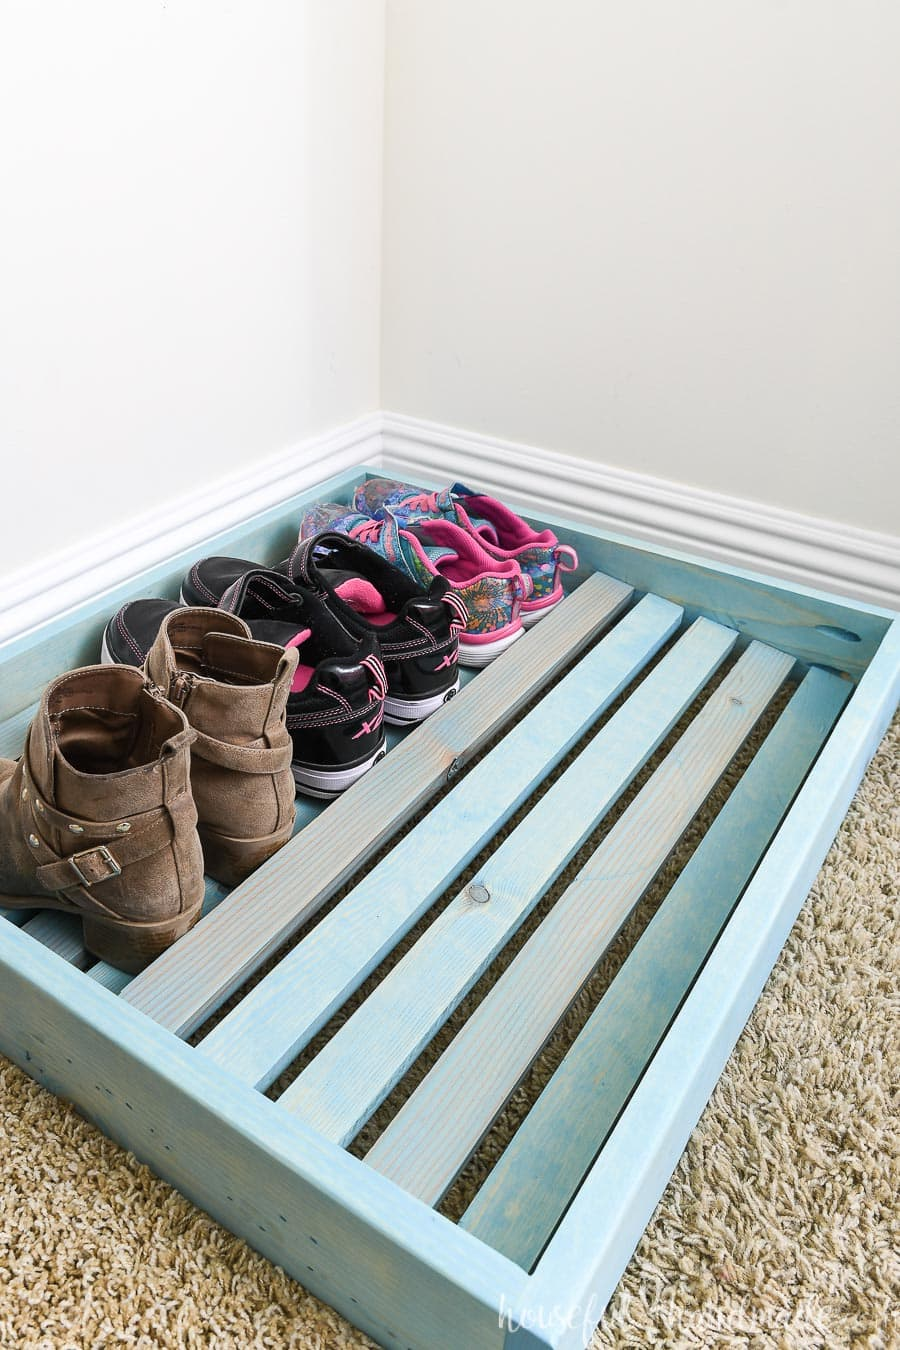 Shoe organizer tray with shoes on the back row showing the way the shoes sit in the organizer.